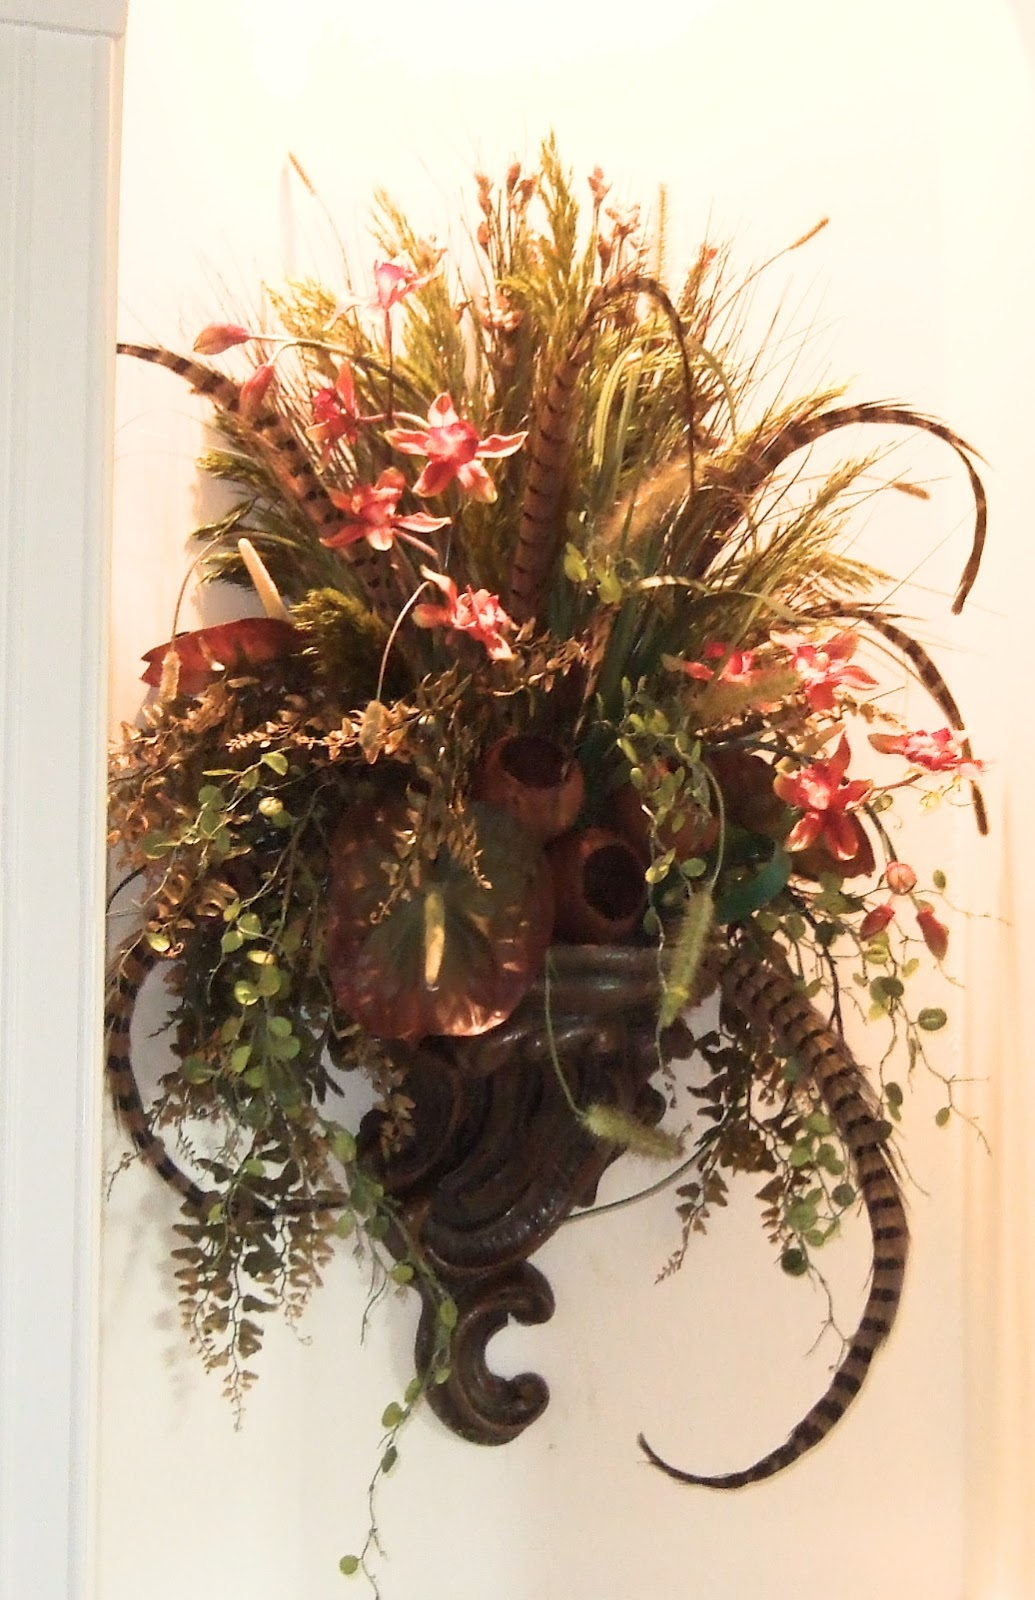 Wall Sconce For Dried Flowers : Ana Silk Flowers: Images!!!...Wall Sconces Silk Flowers Arrangements!!!